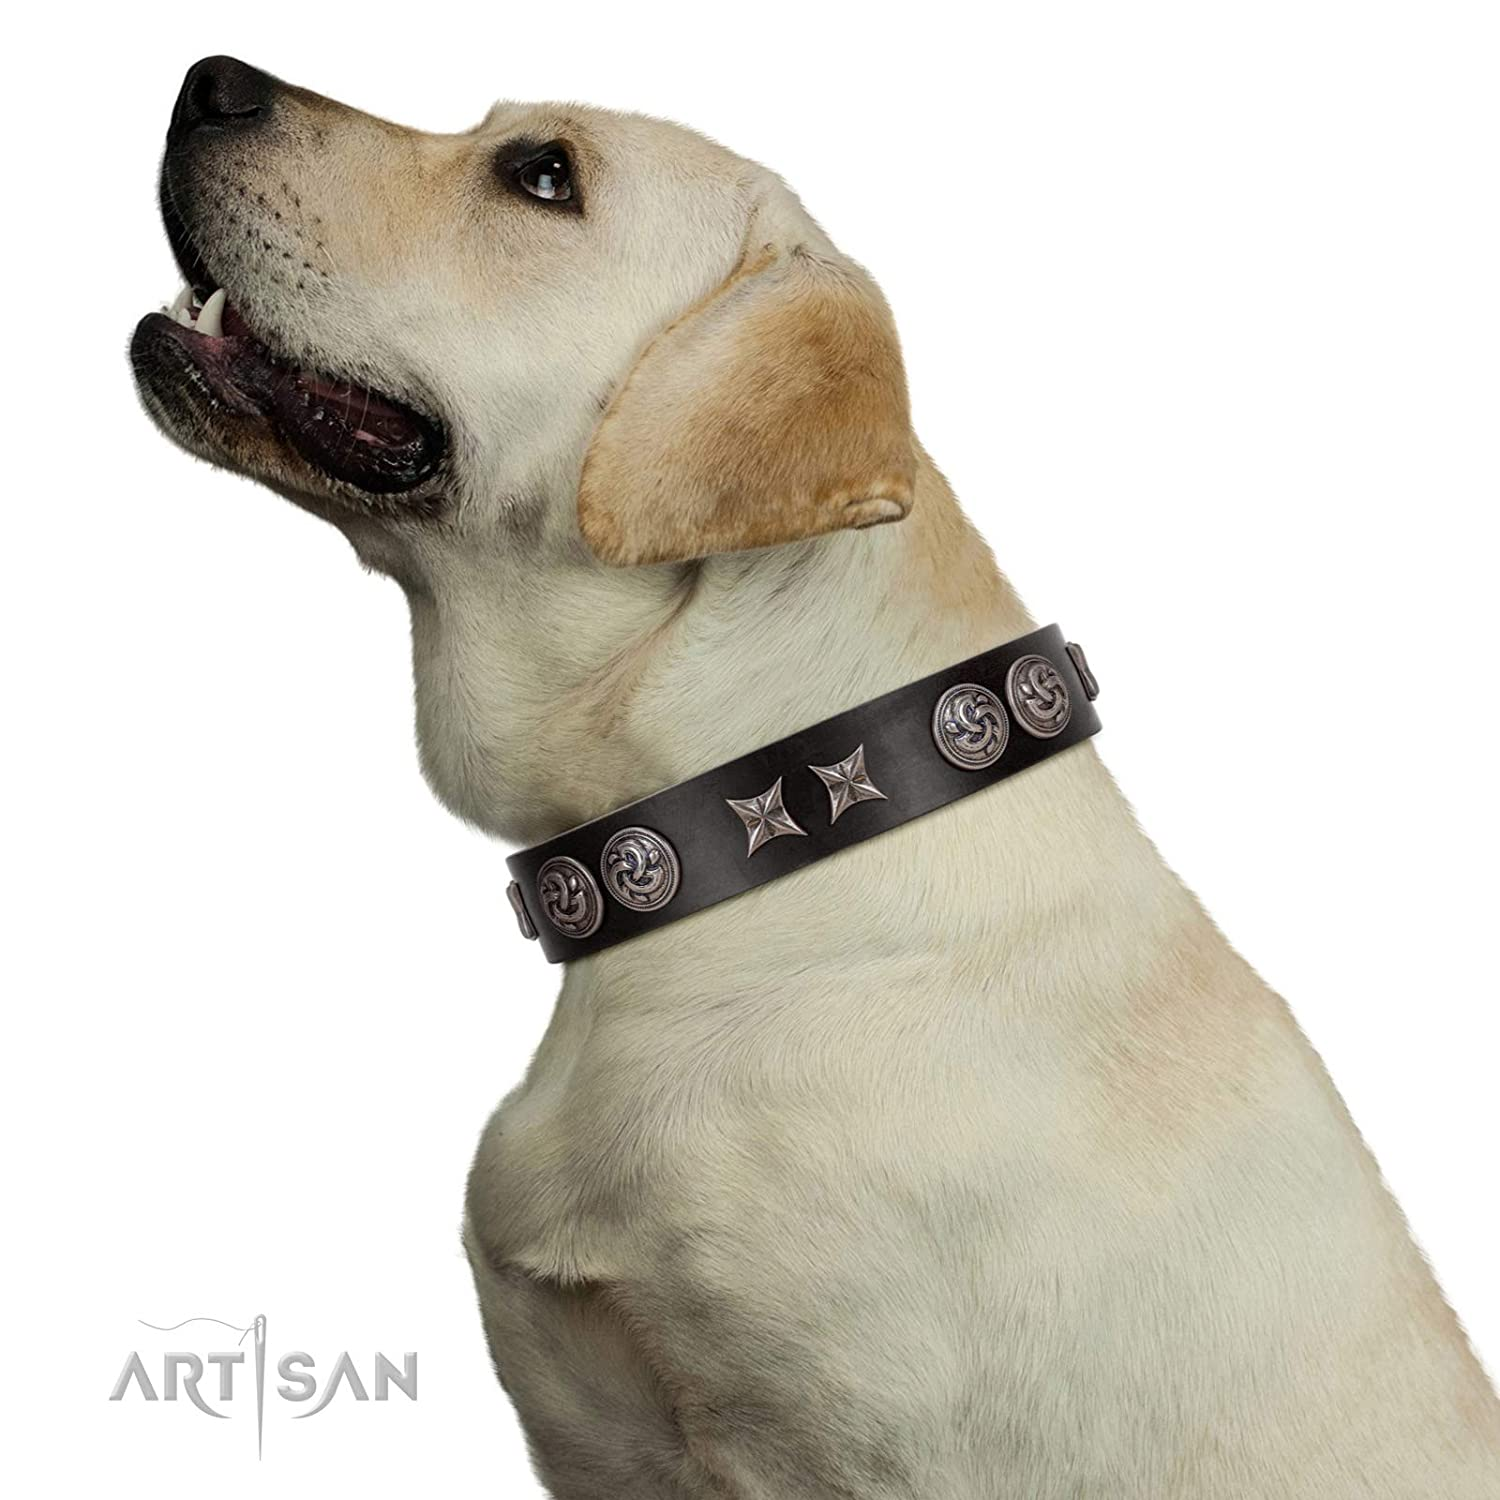 Fits for 32 inch (80cm) dog's neck size FDT Artisan 32 inch Black Leather Dog Collar with Brooches and Stars Century Silver 1 1 2 inch (40 mm) Wide Gift Box Included